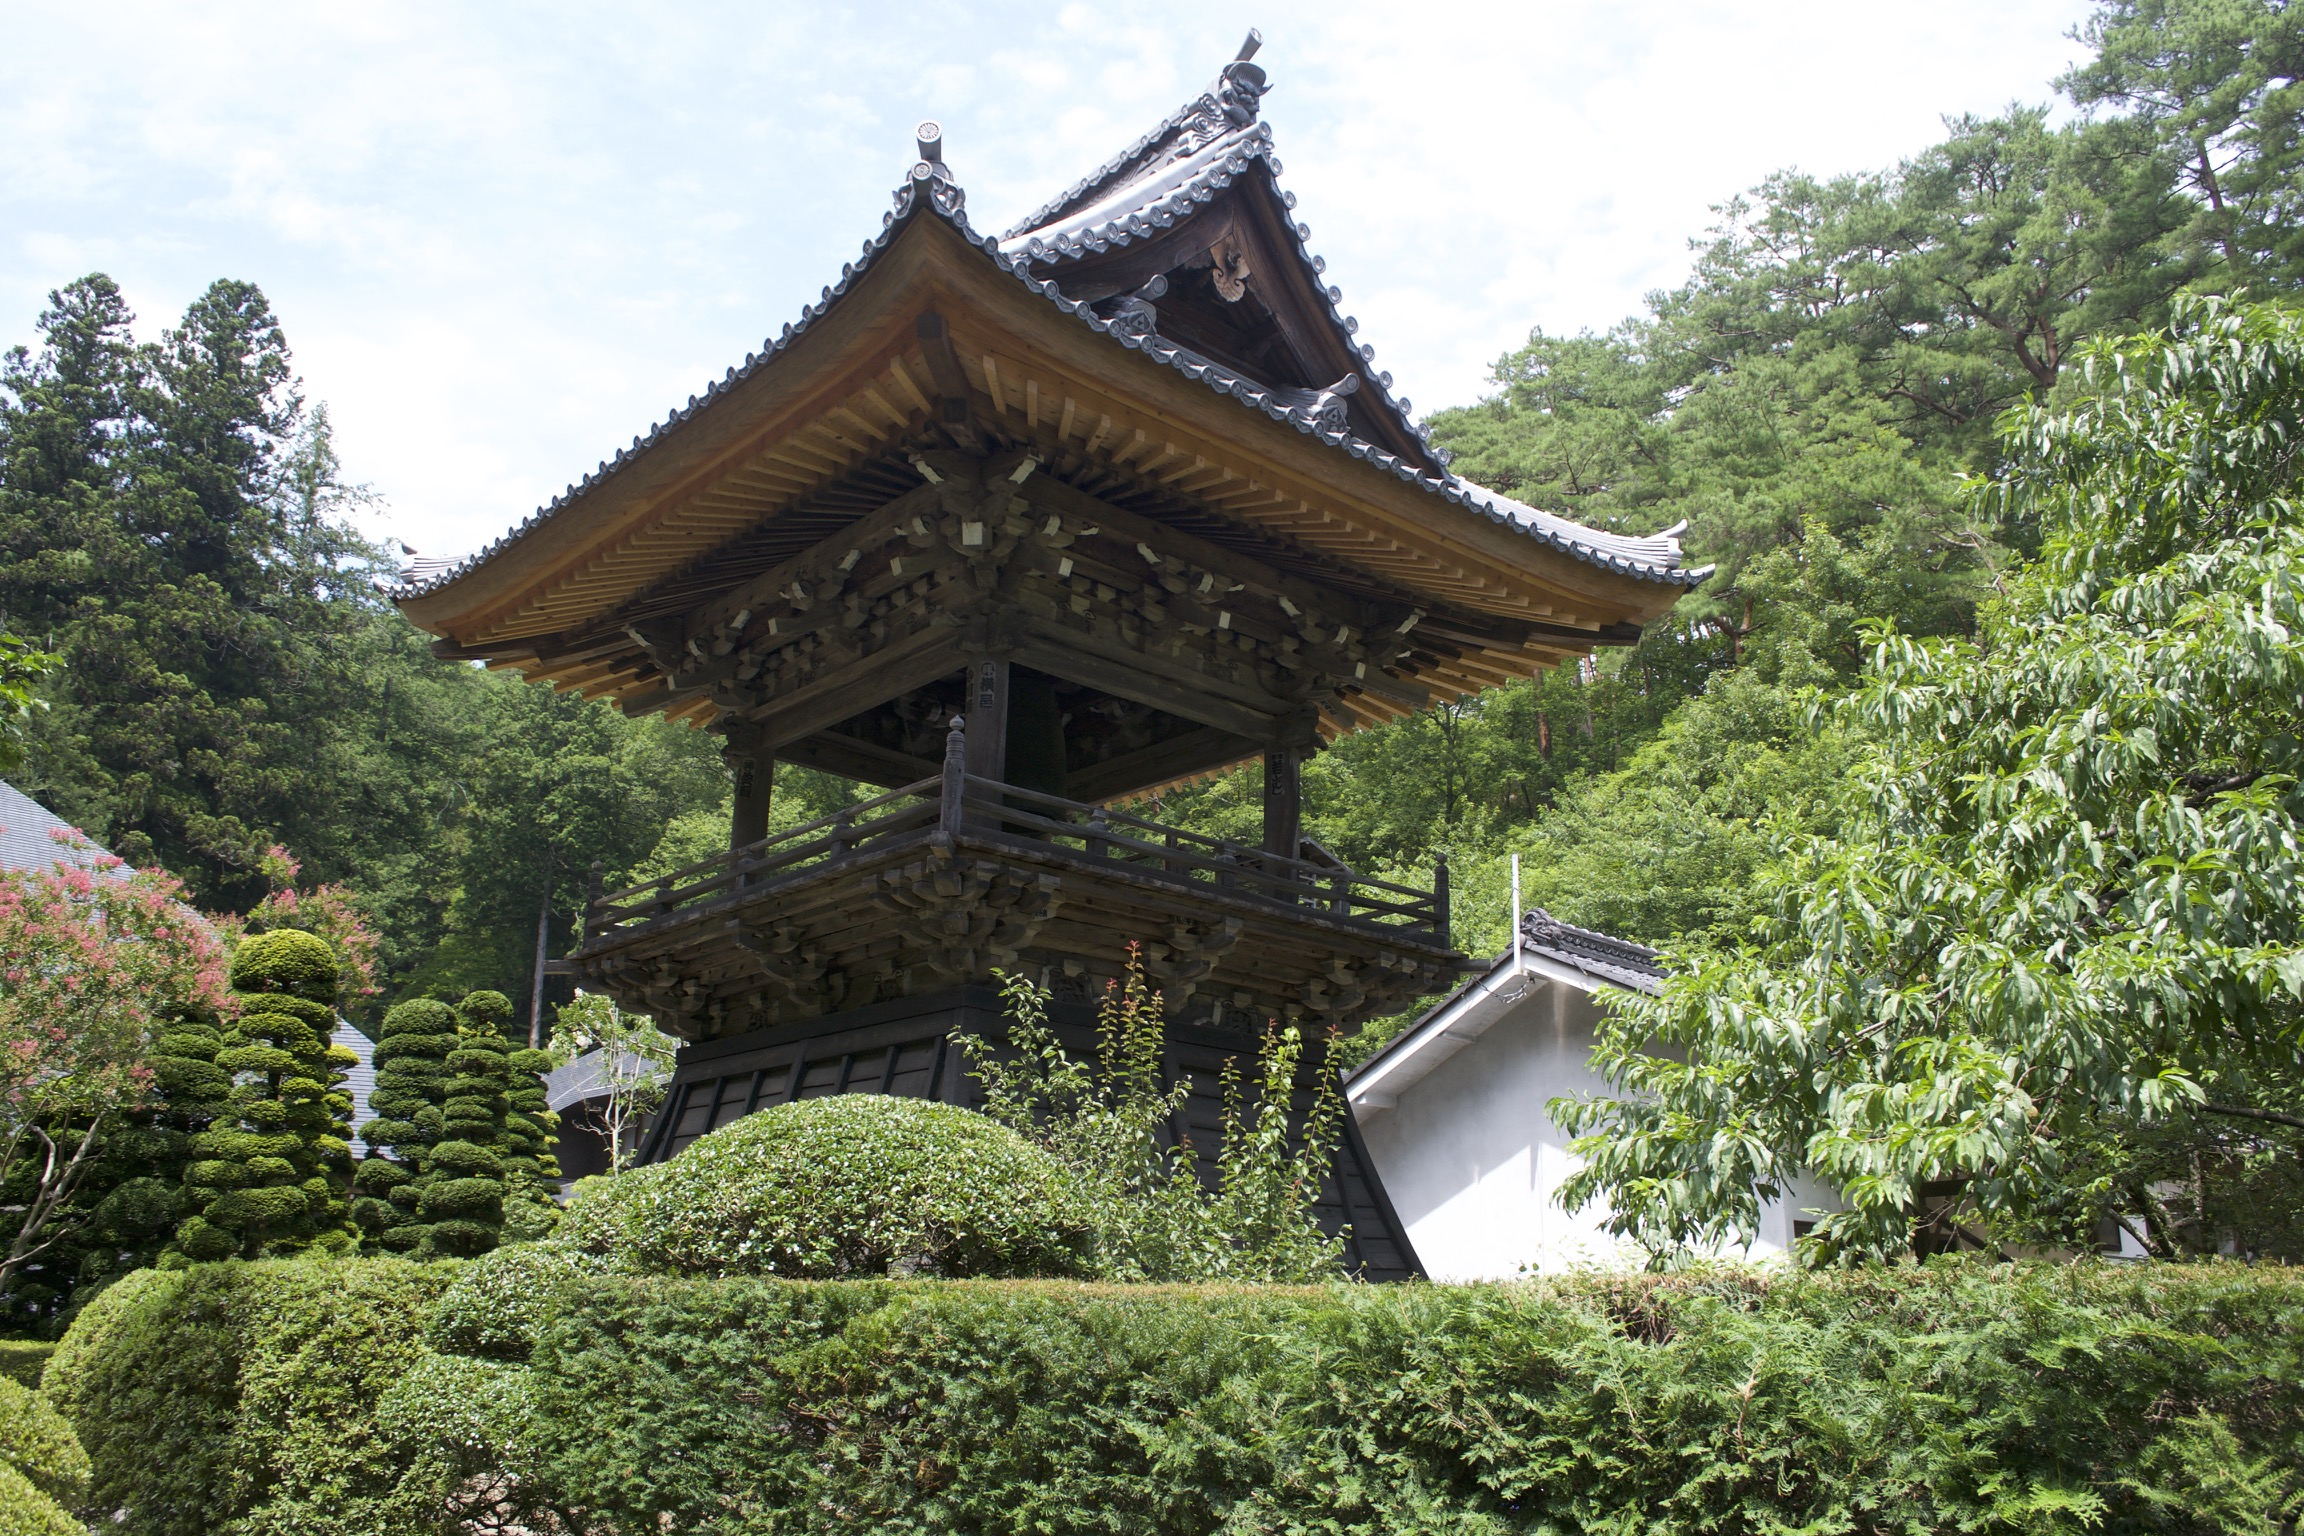 An elevated single-tiered open pagoda.